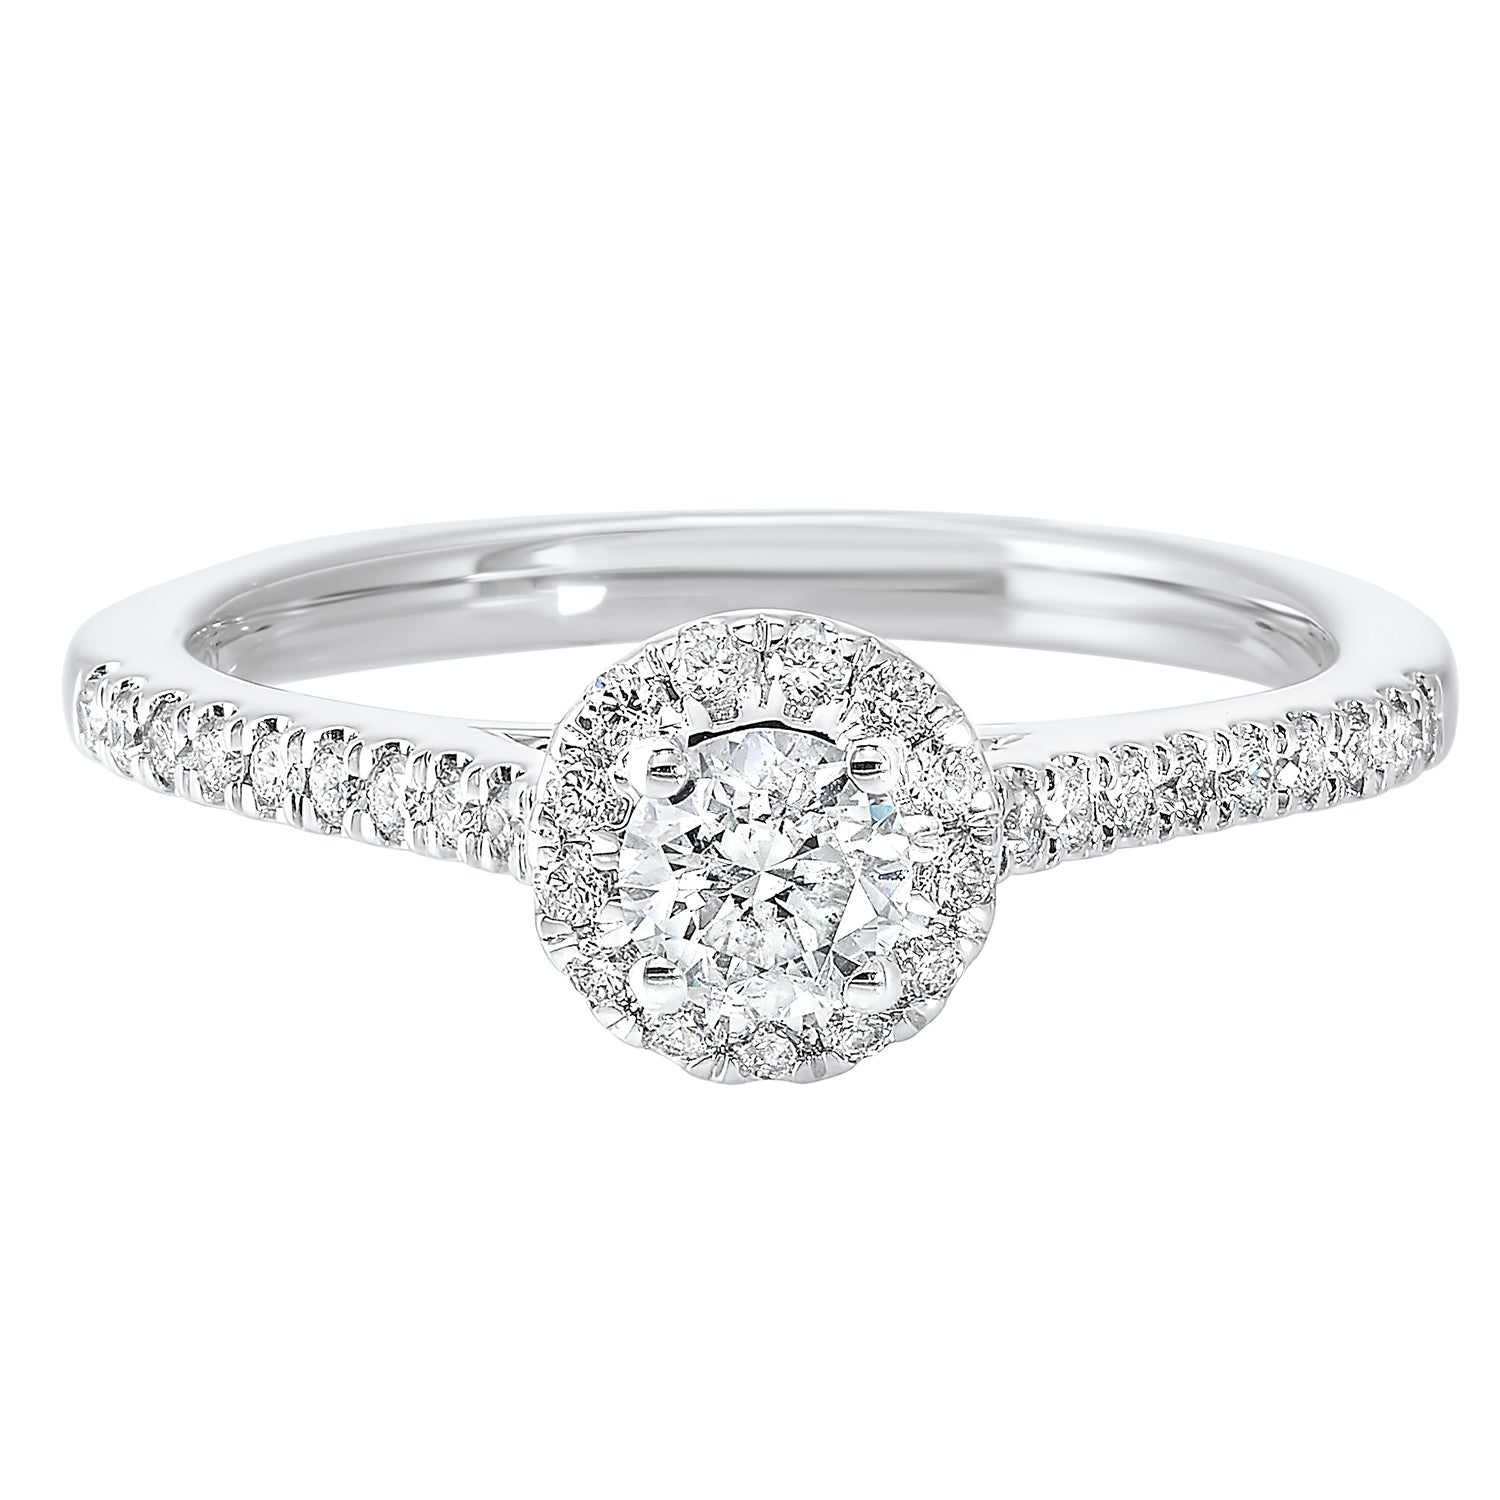 14K White Gold Cash&Carry Shared Prong Diamond Ring (1/2 ct. tw.)